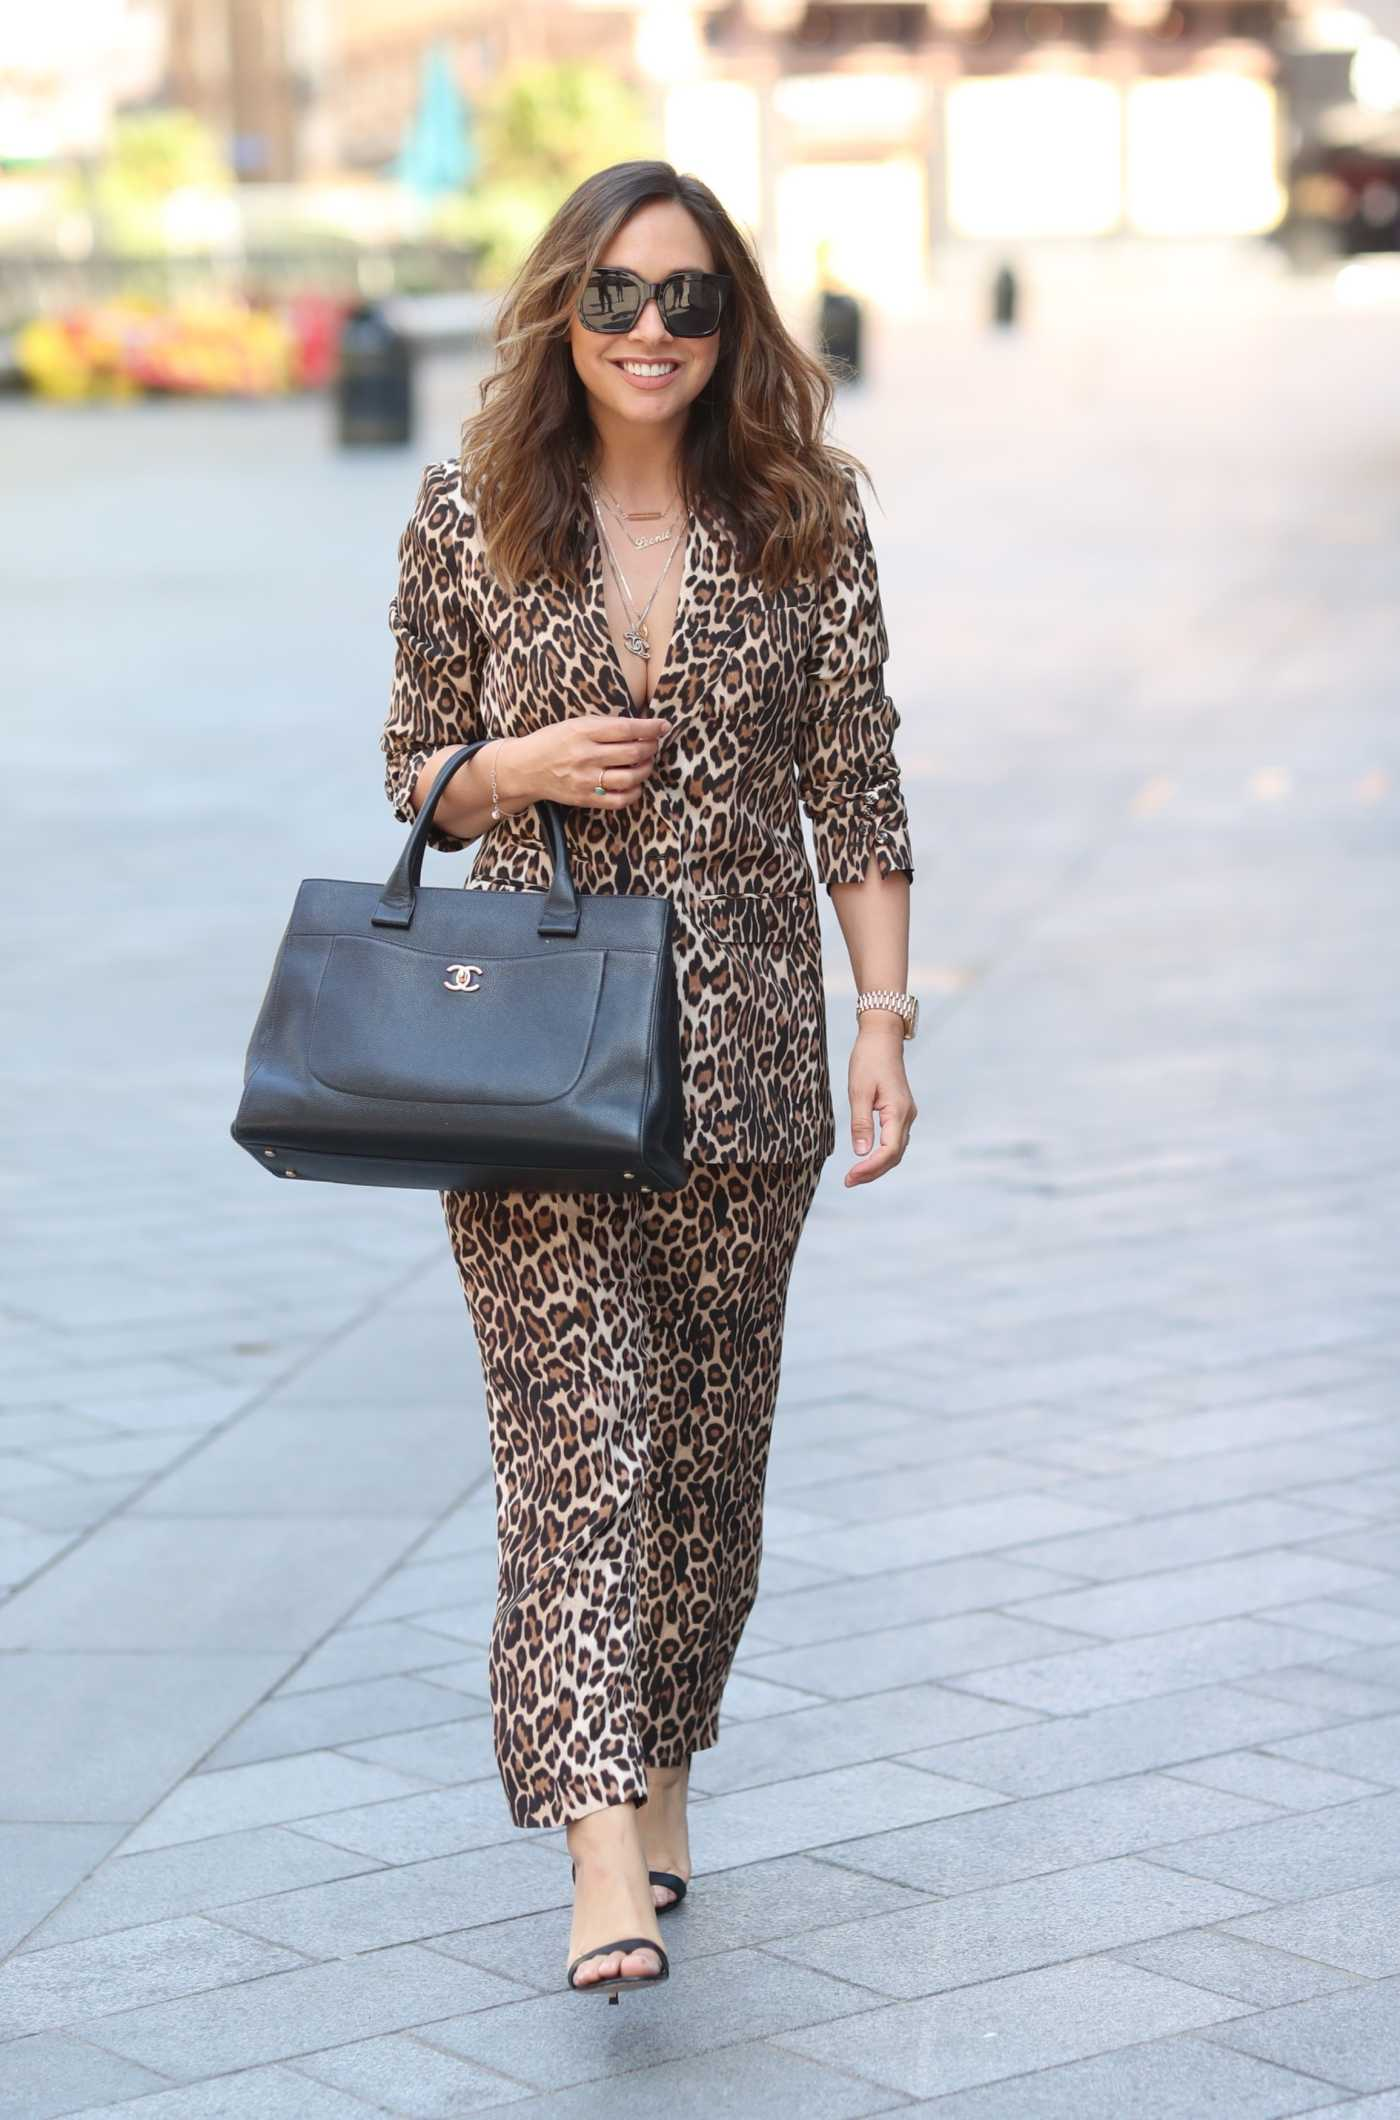 Myleene Klass in a Leopard Print Trouser Suit Arrives at the Global Studios in London 05/21/2020